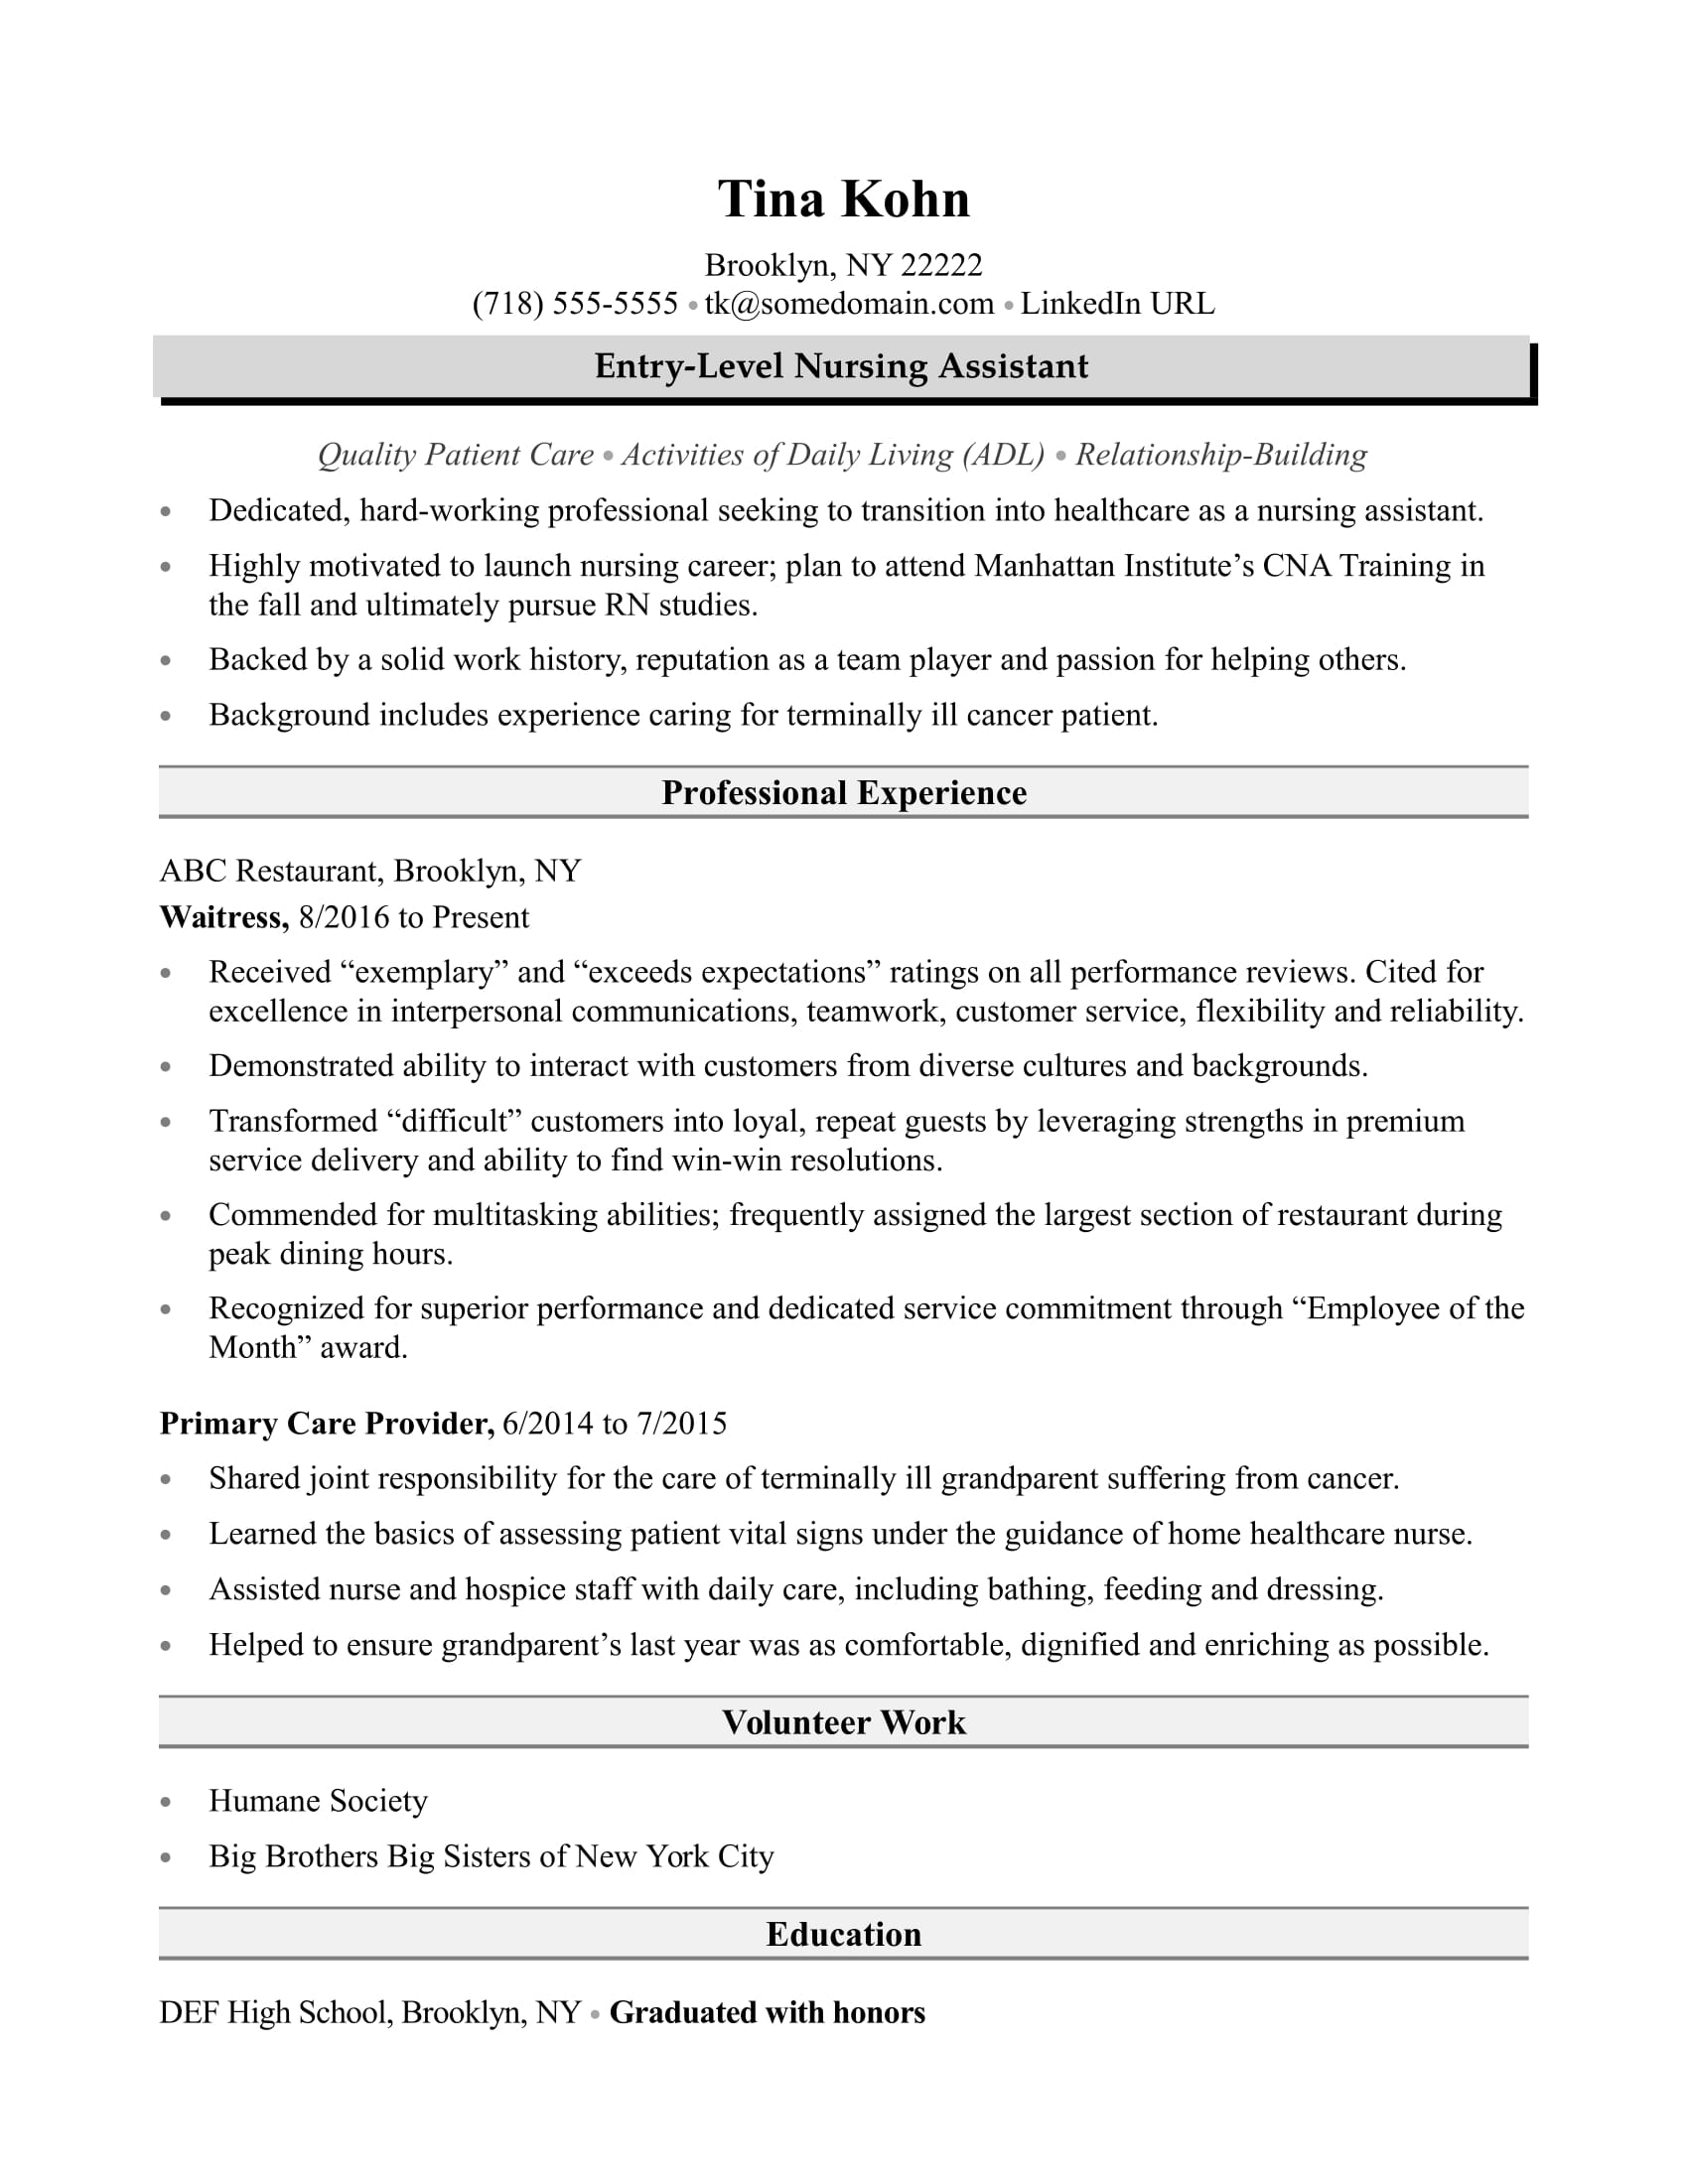 Nursing Assistant Resume Sample  Resume For Nursing Assistant